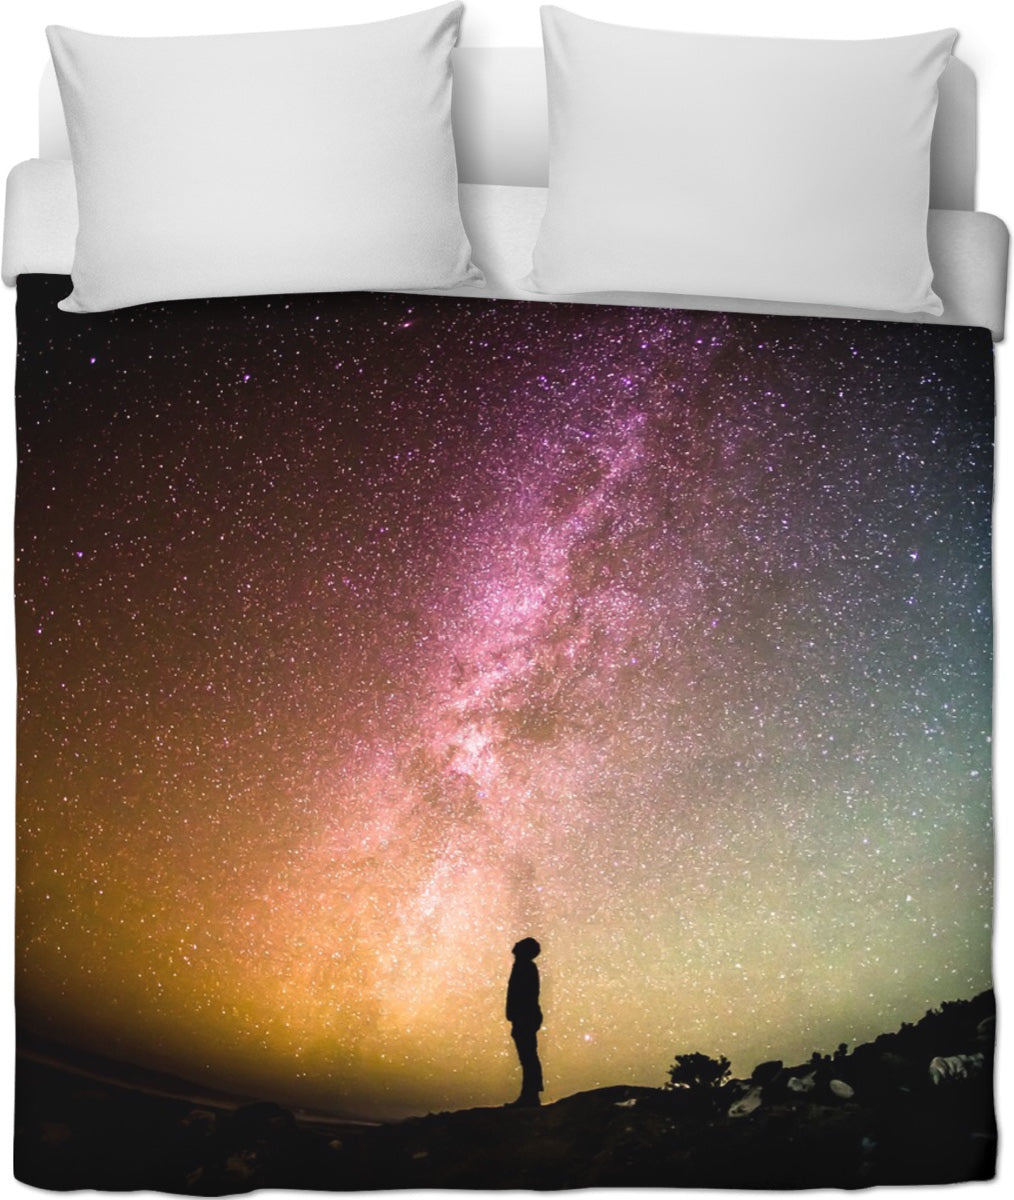 Astronomer Duvet Cover